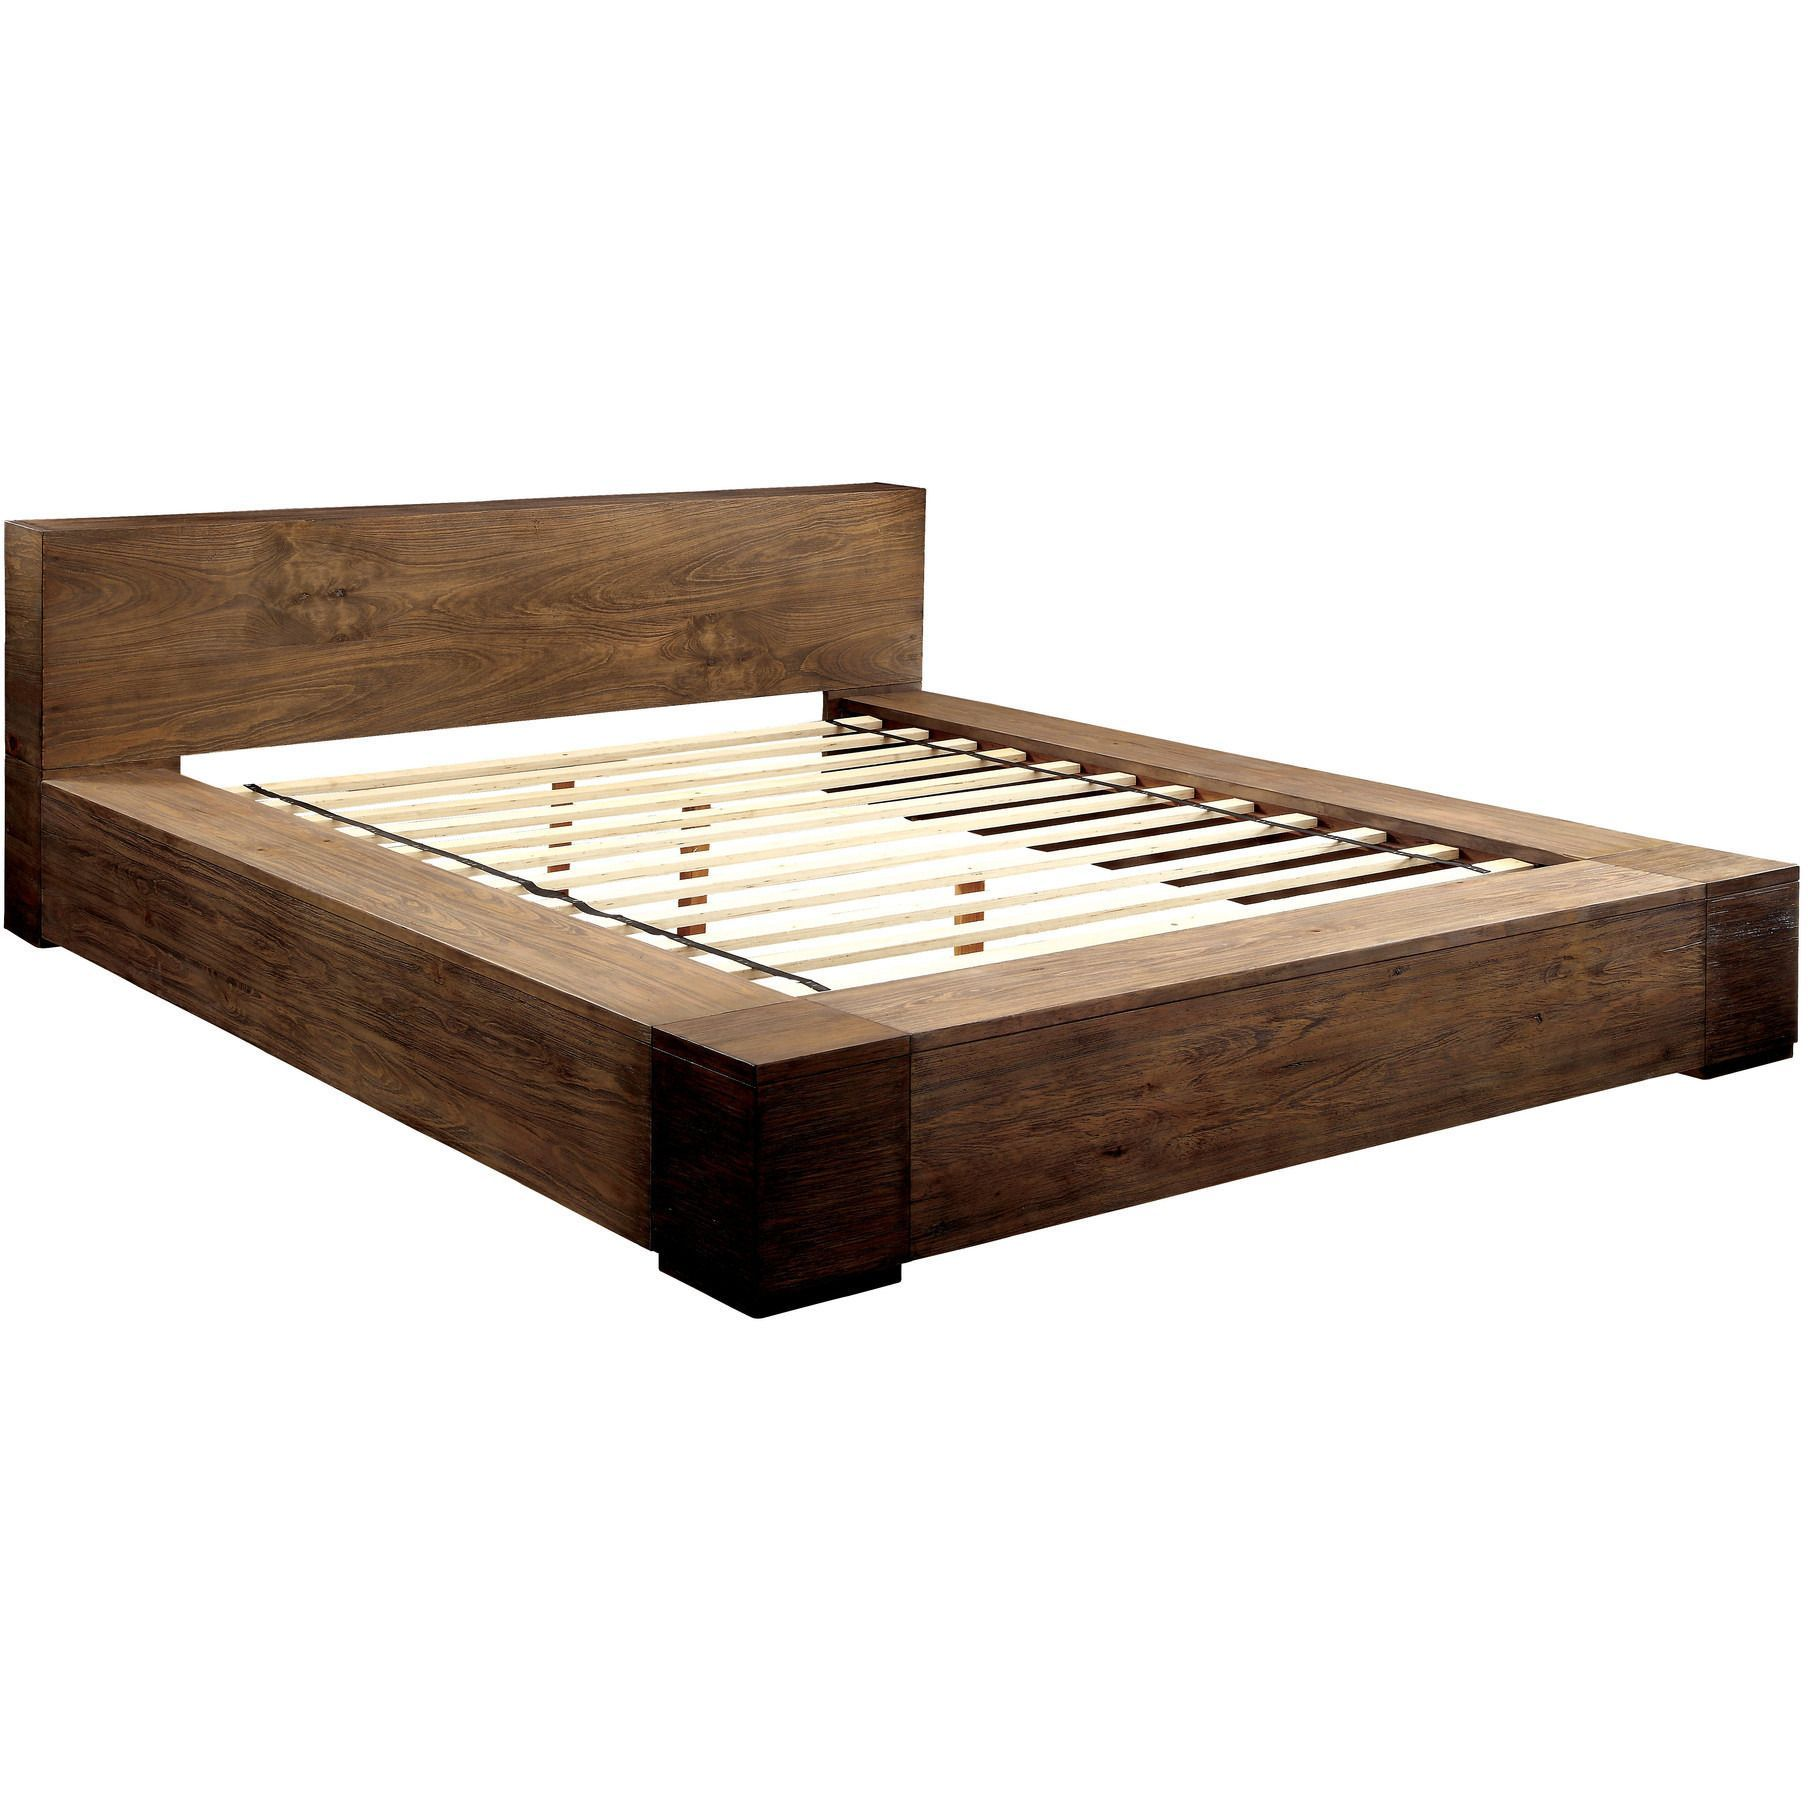 moline i transitional low profile california king platform bed in  - moline i transitional low profile california king platform bed in rusticnatural tone  california king platform bed king platform bed andcalifornia king